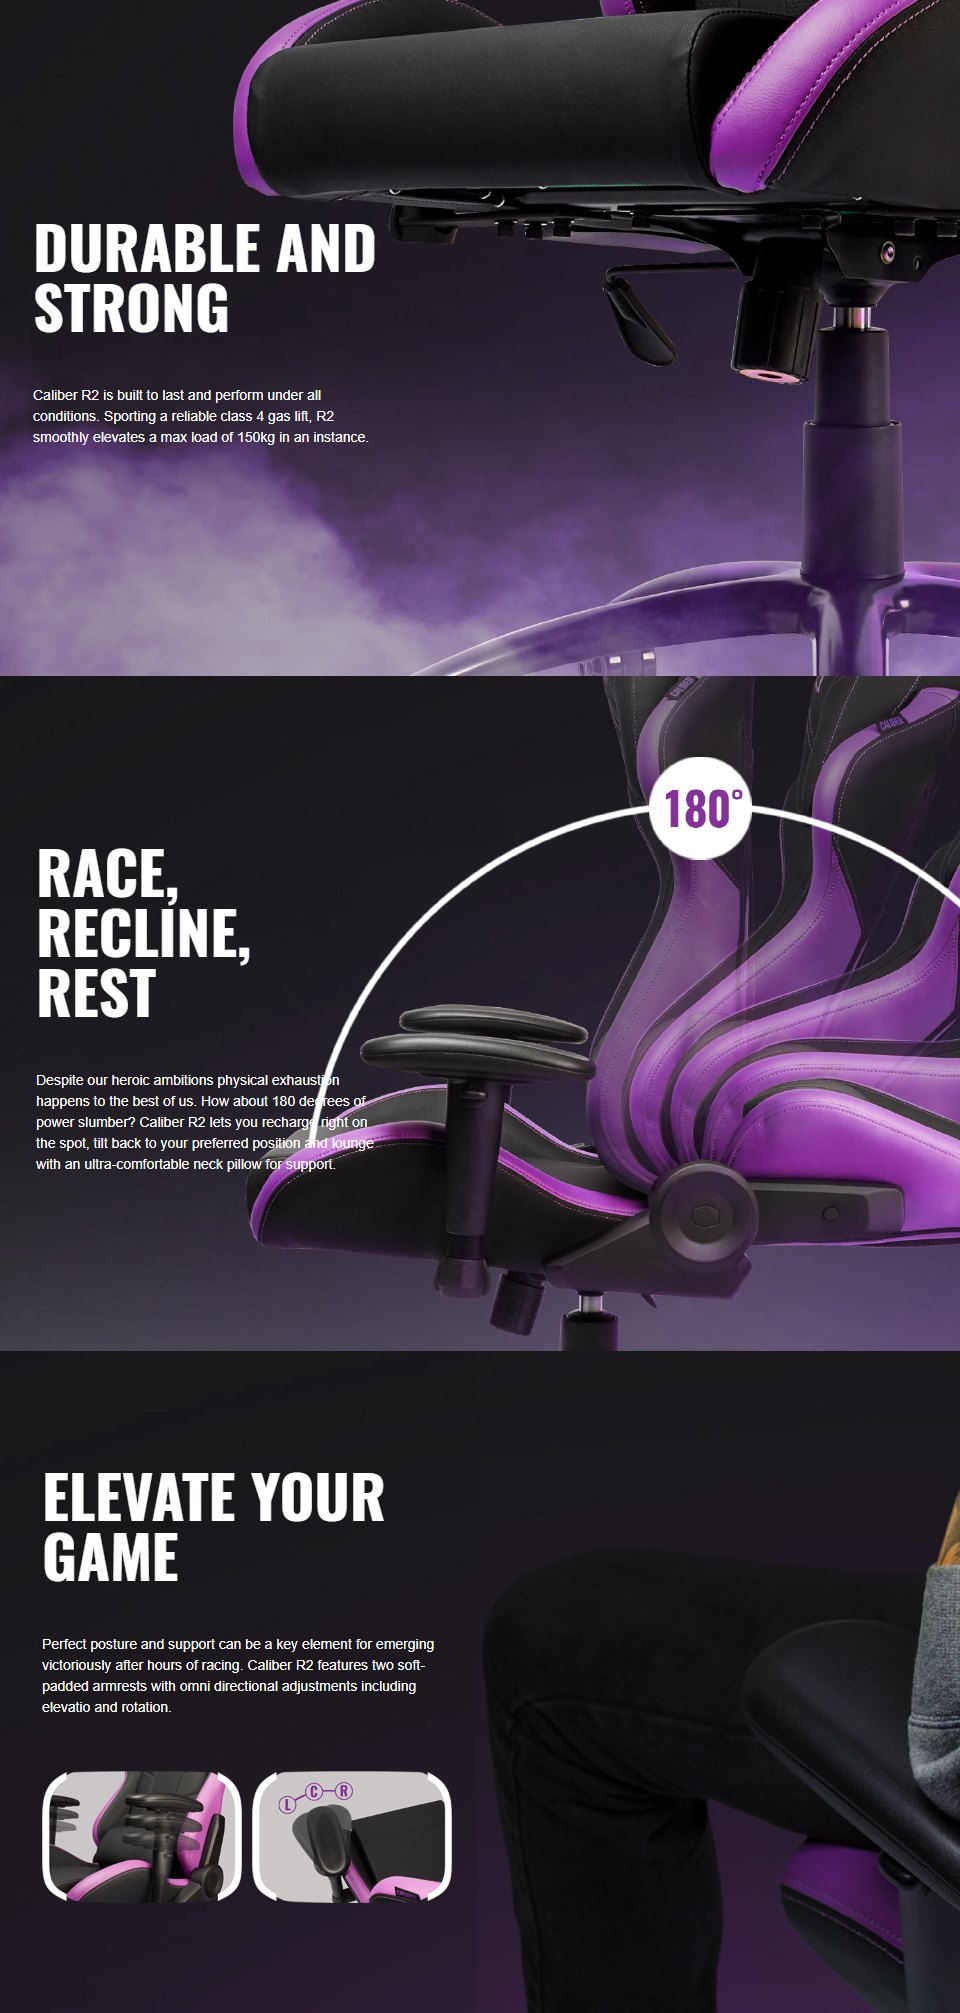 Cooler Master Caliber R2 Gaming Chair features